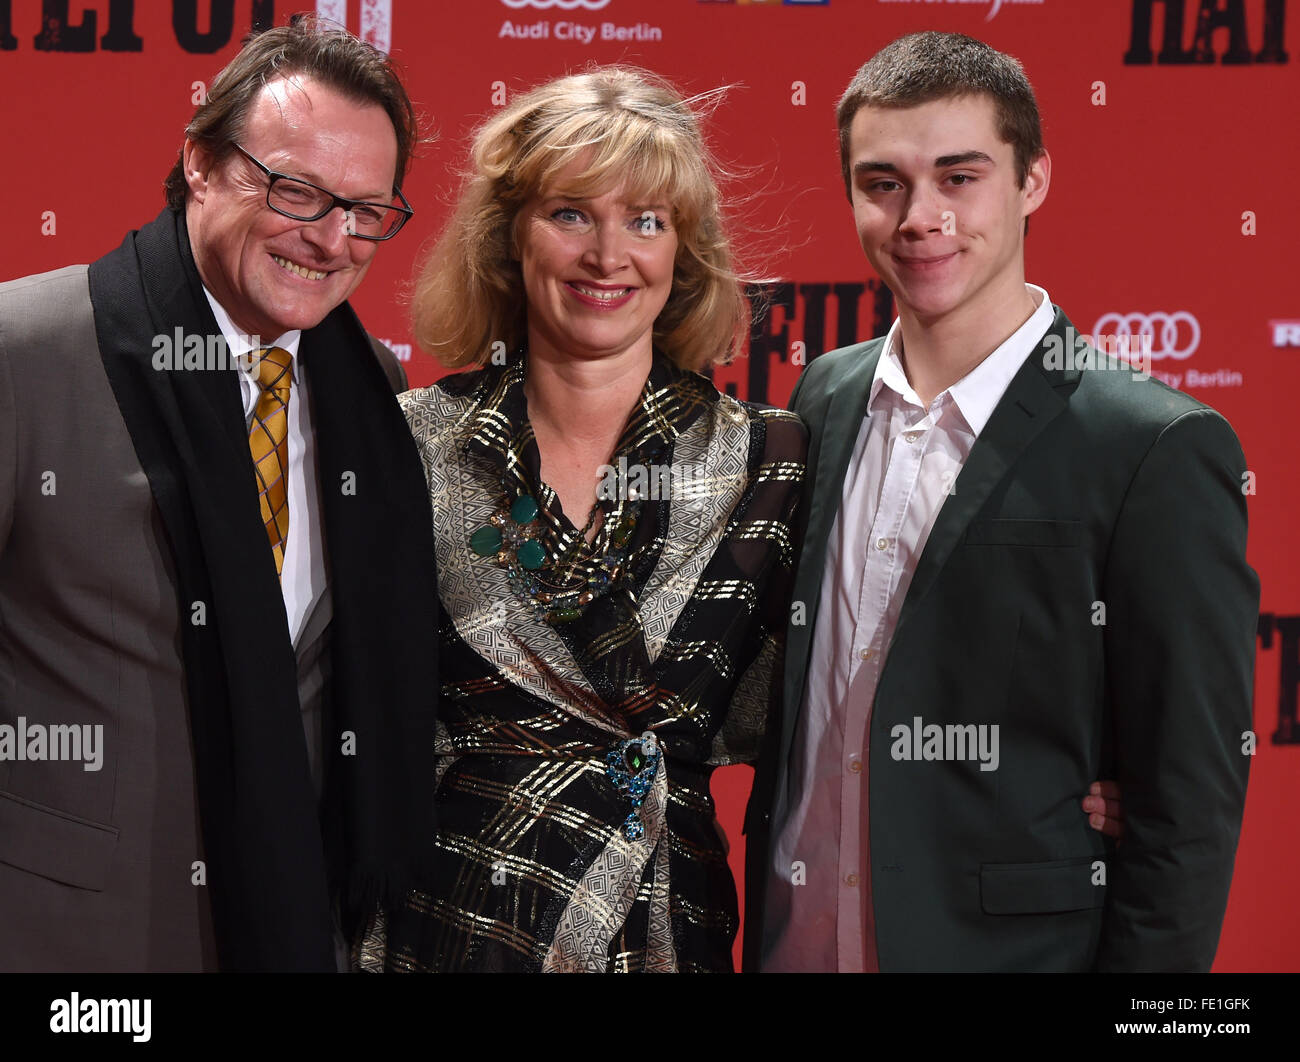 Designer Nanna Kuckuck(C), her husband Dirk Ullmann (L) and her son Mel arrive to the German premiere of the - Stock Image